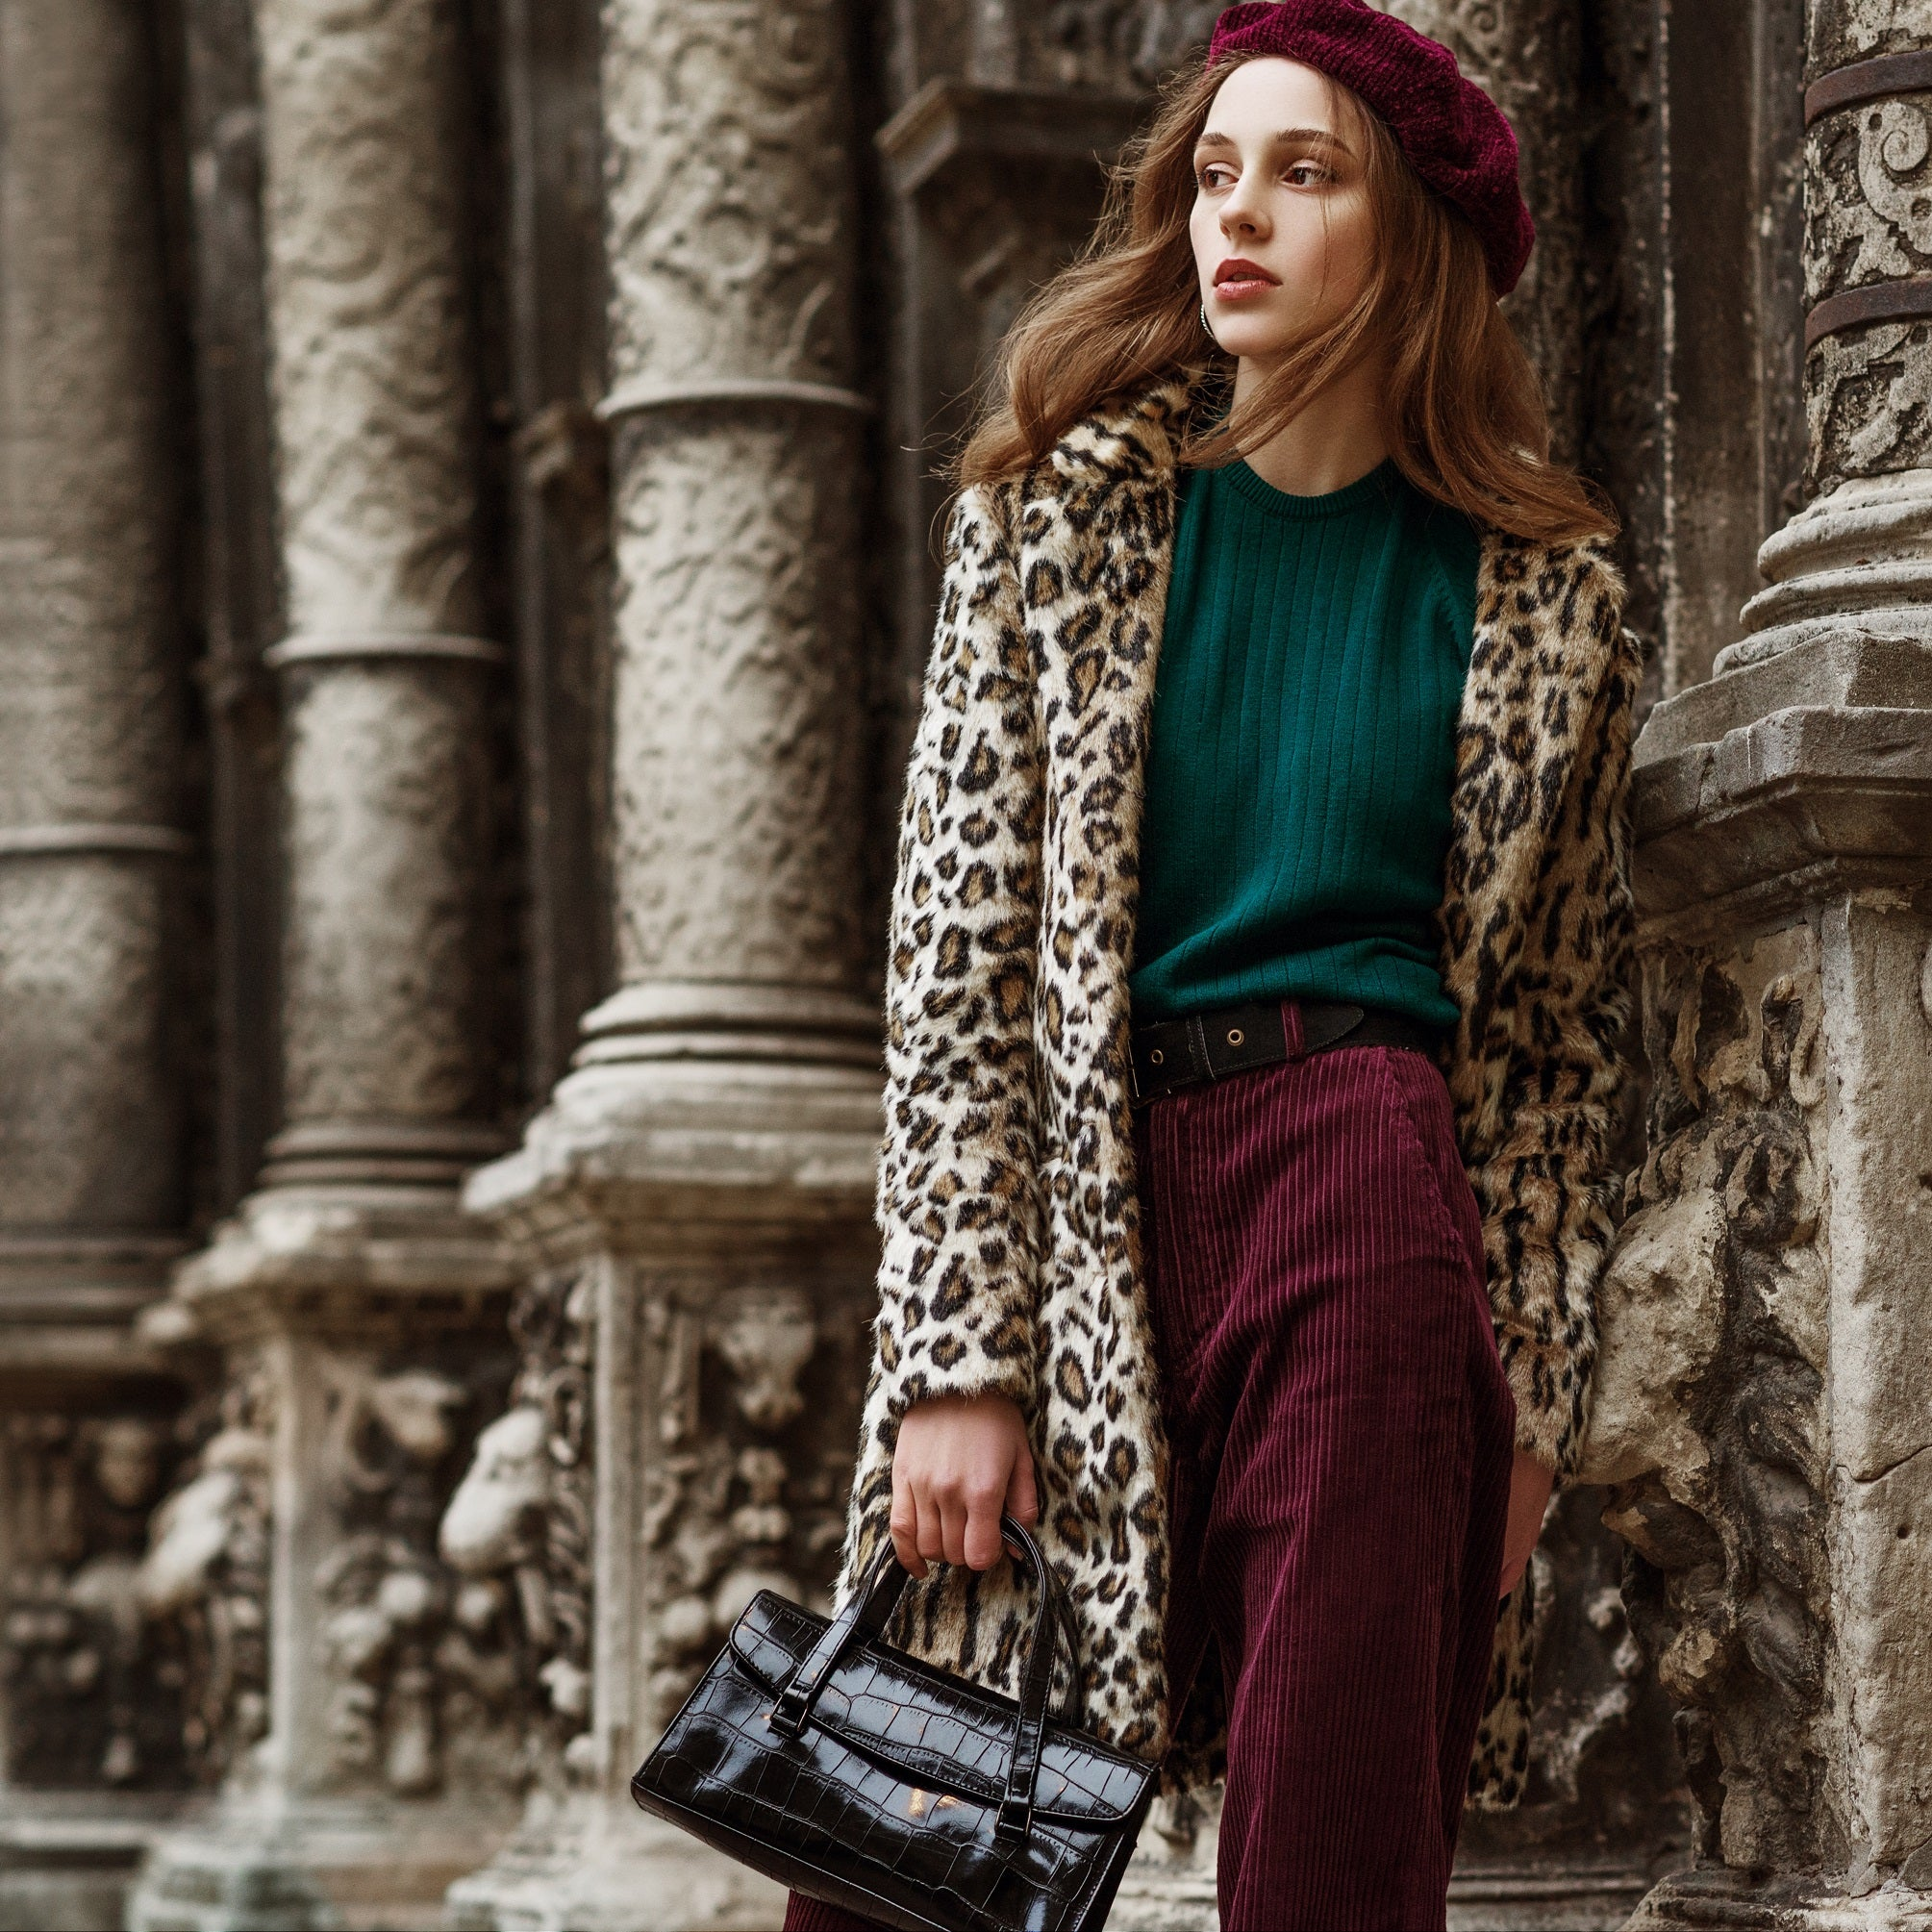 Complimentary look with animal print